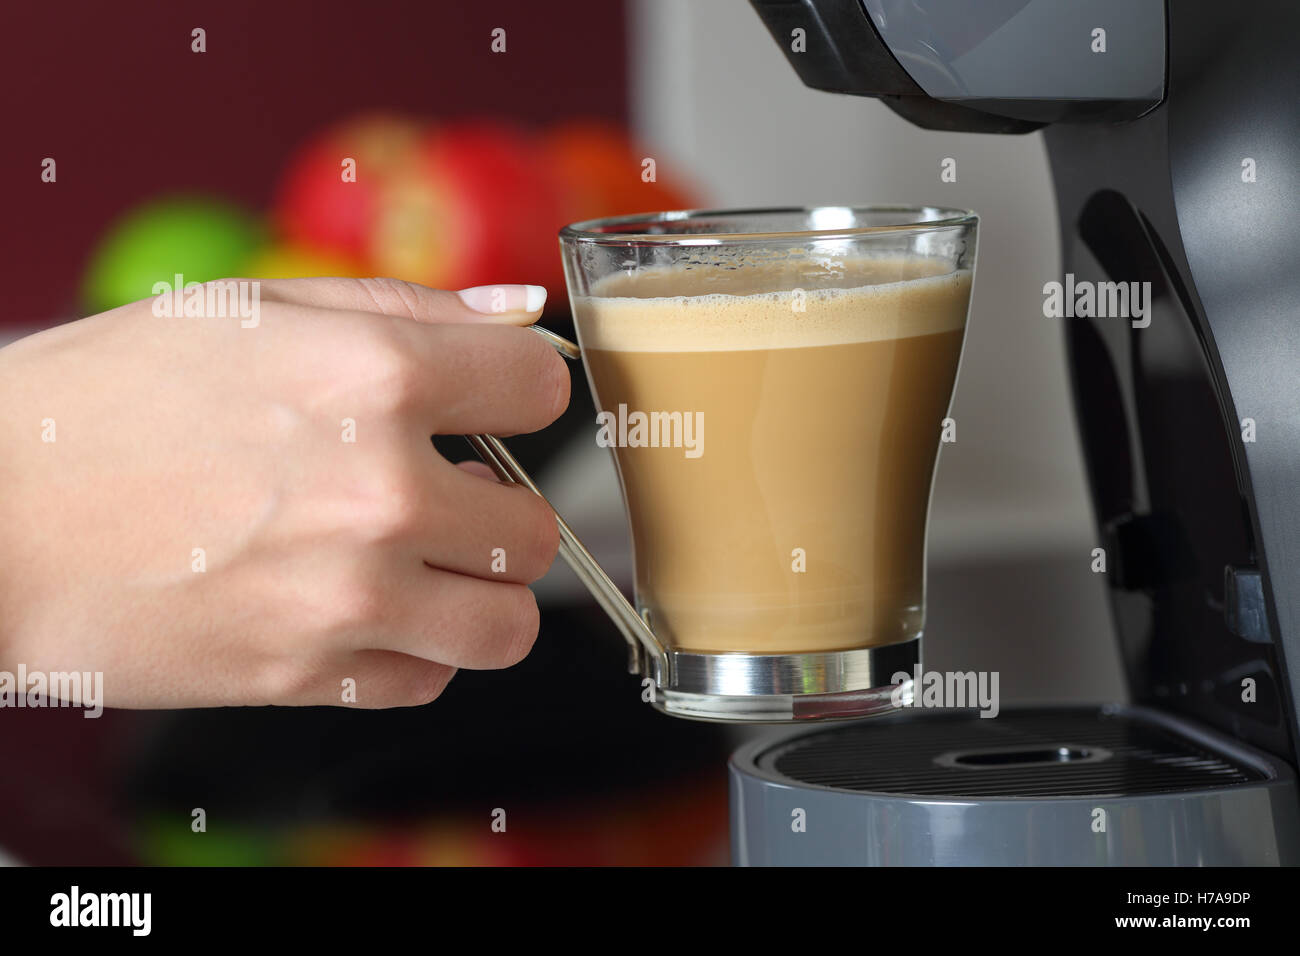 Close up of a woman hand holding a cup in a coffee maker in the kitchen at home - Stock Image